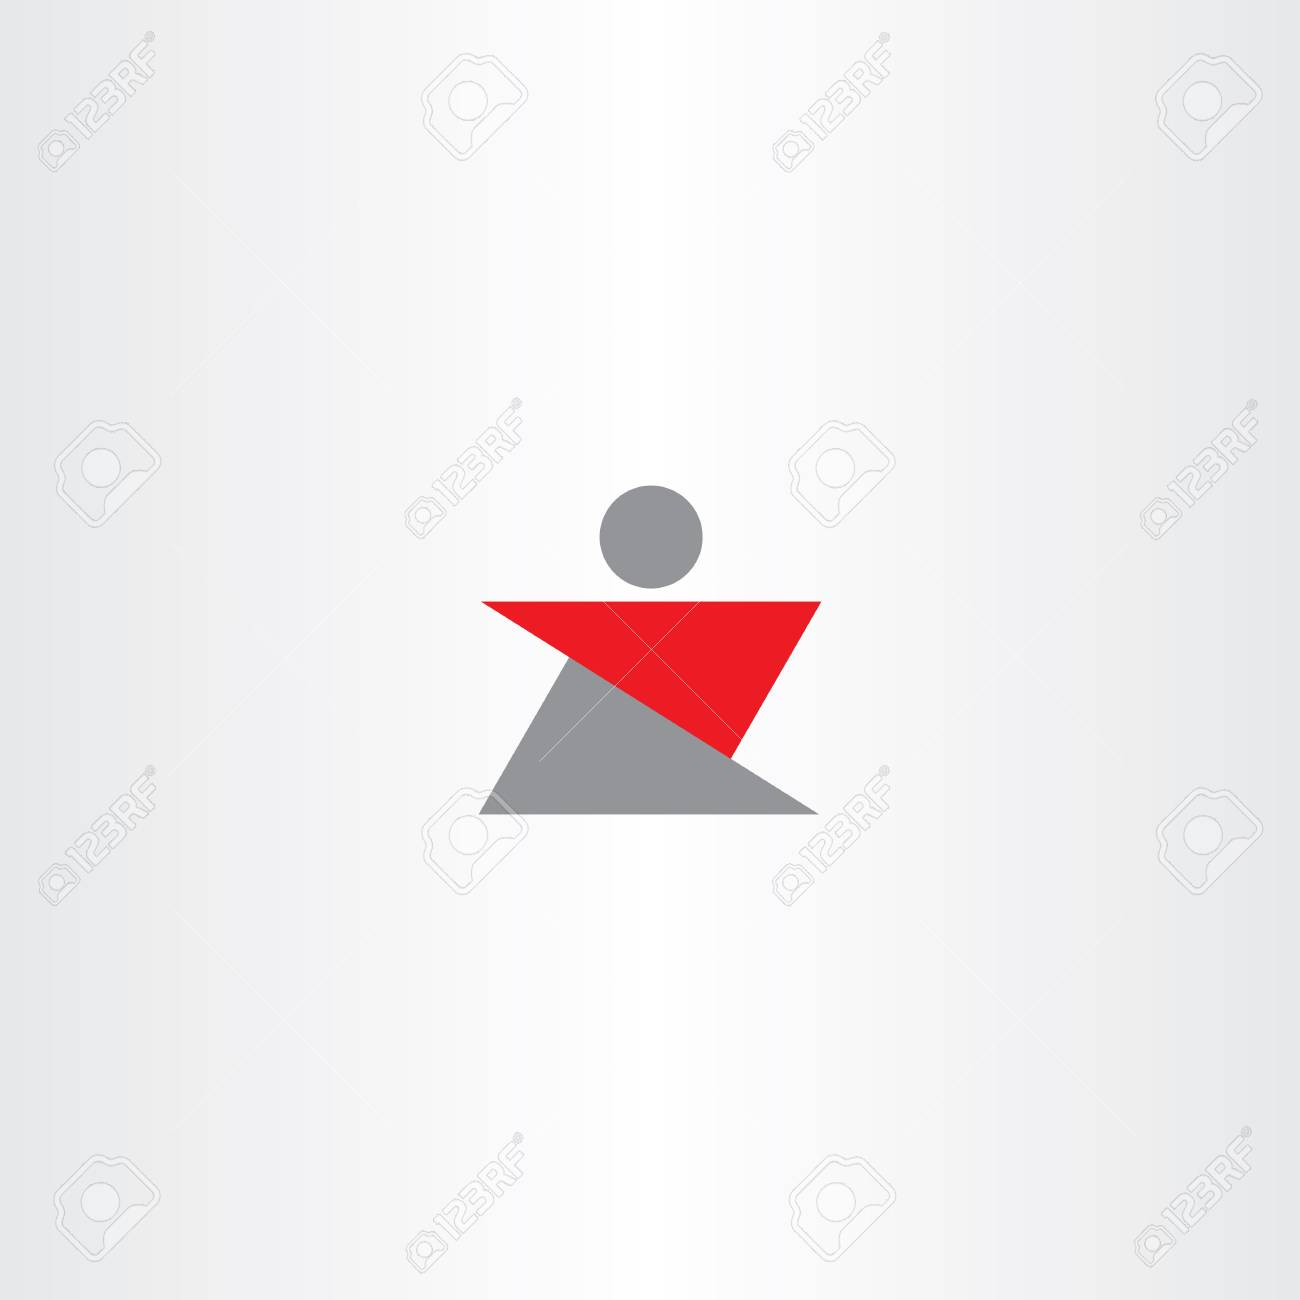 letter z man icon logo sign shape royalty free cliparts vectors